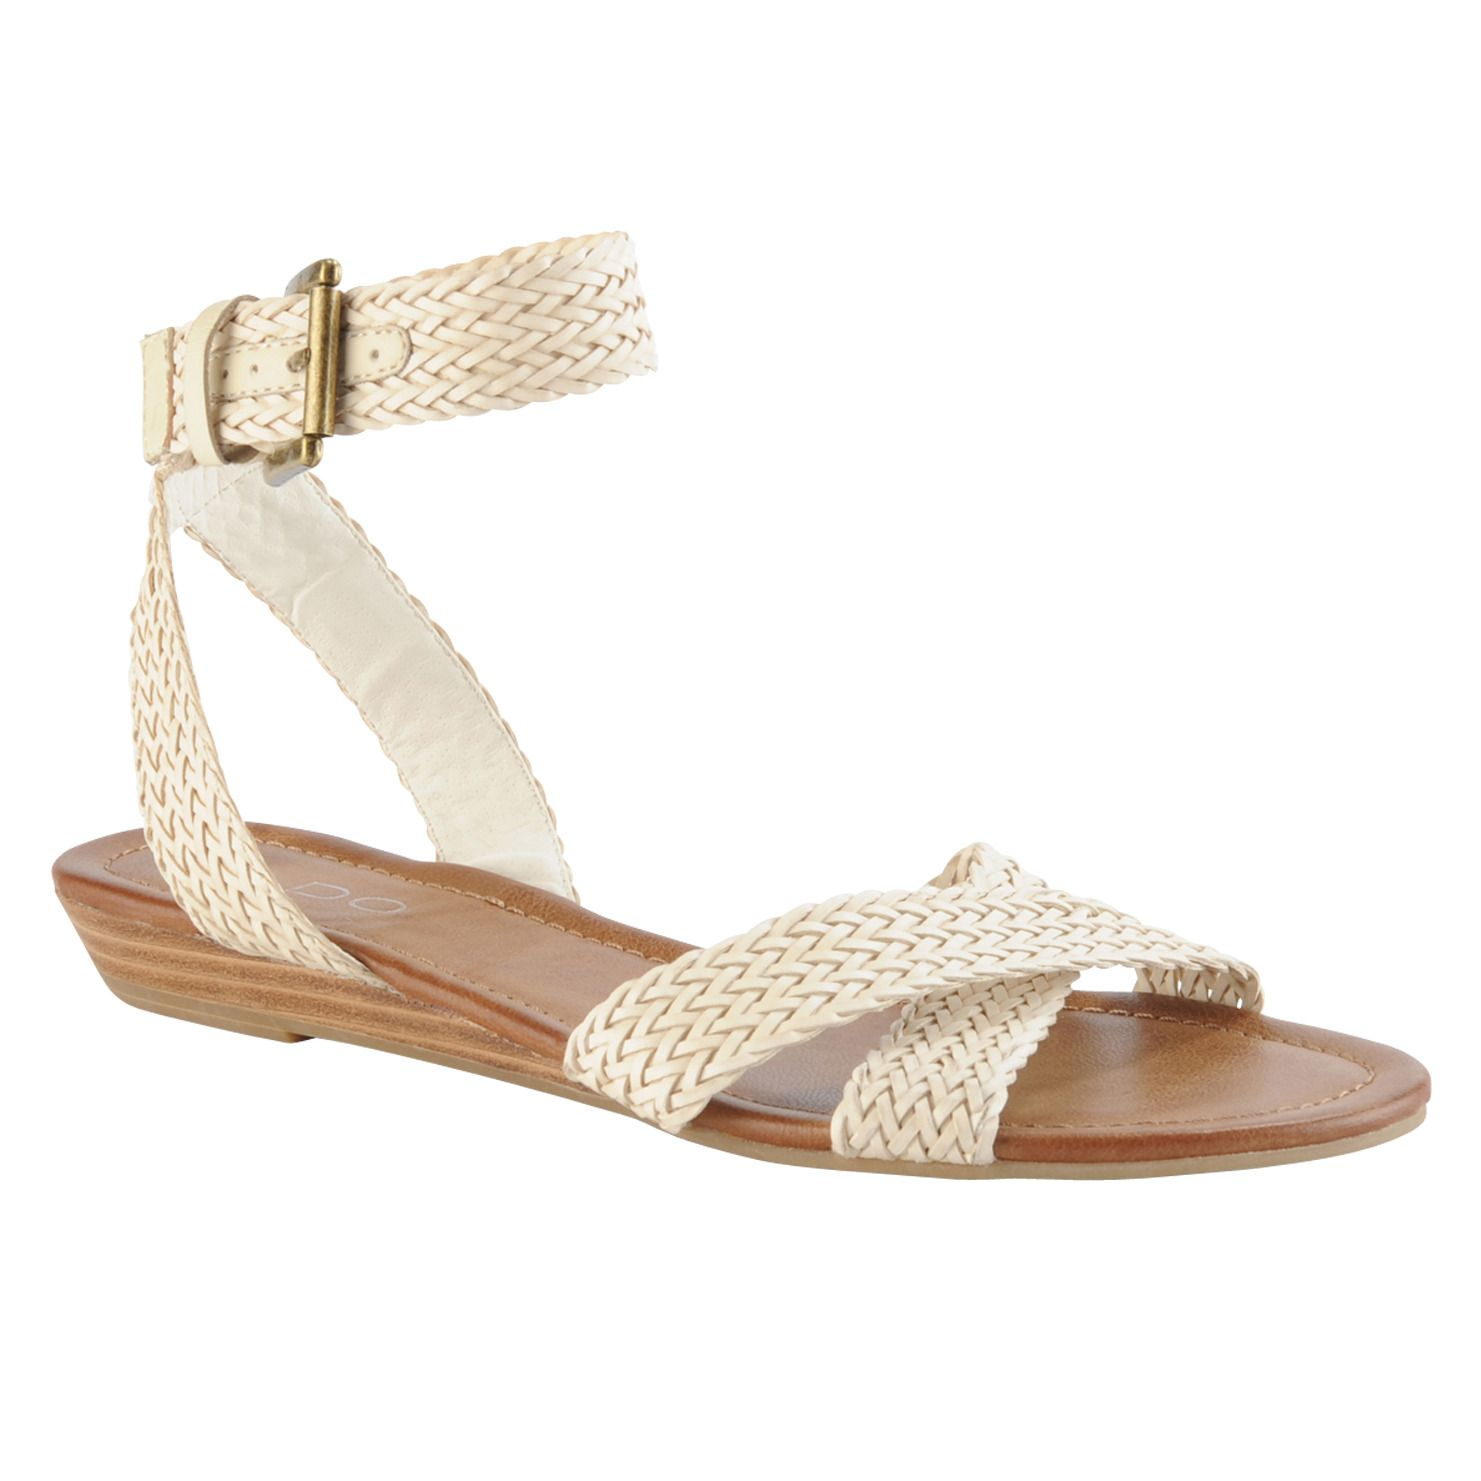 e63d593a4 Aldo Hembre woven ankle strap sandal. Perfect for the honeymoon ...